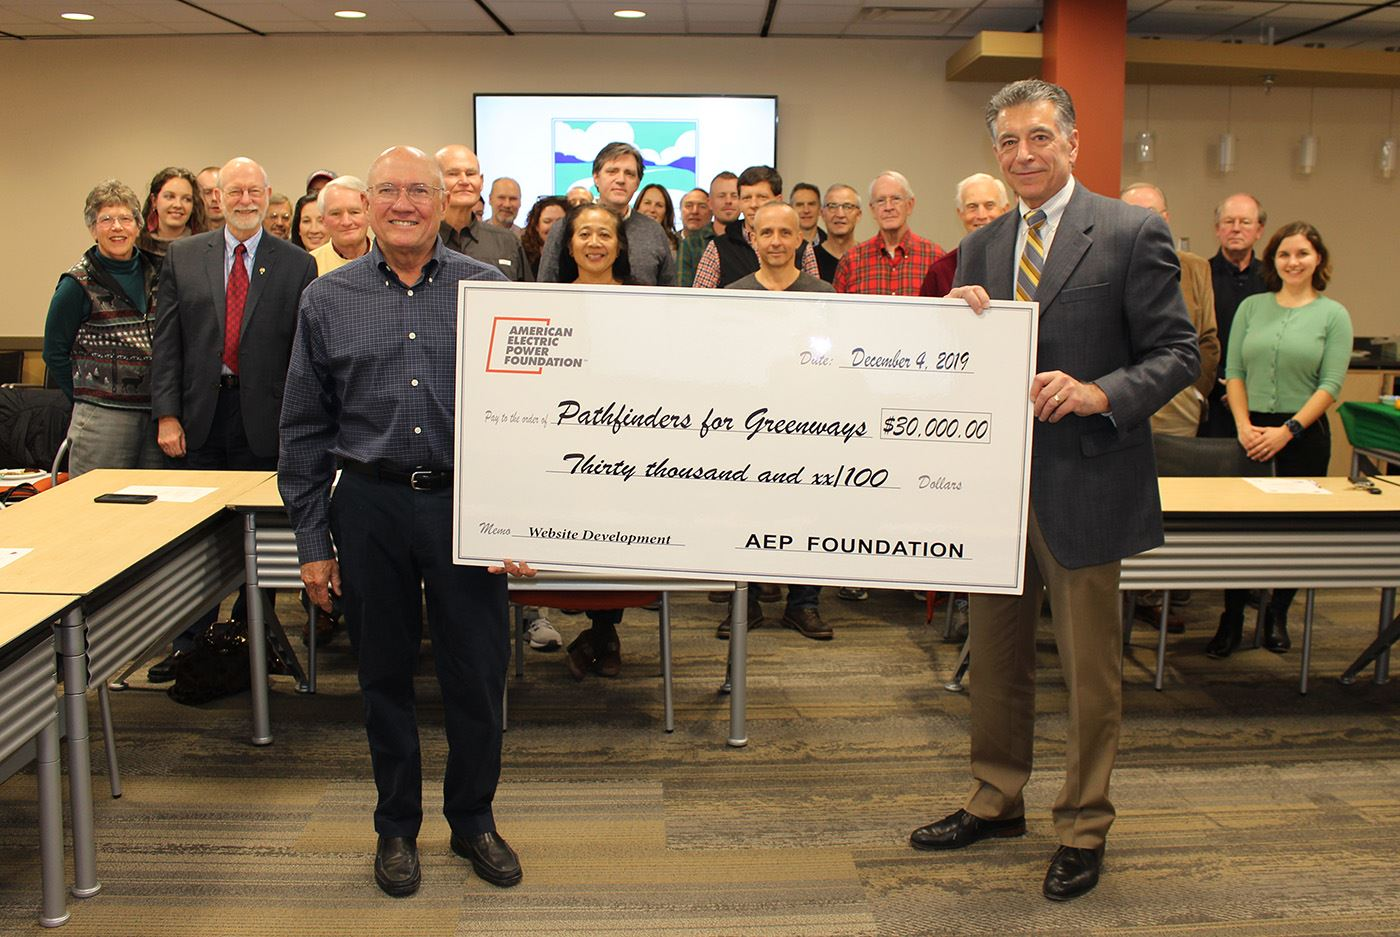 AEP Donation to Roanoke Valley Greenways